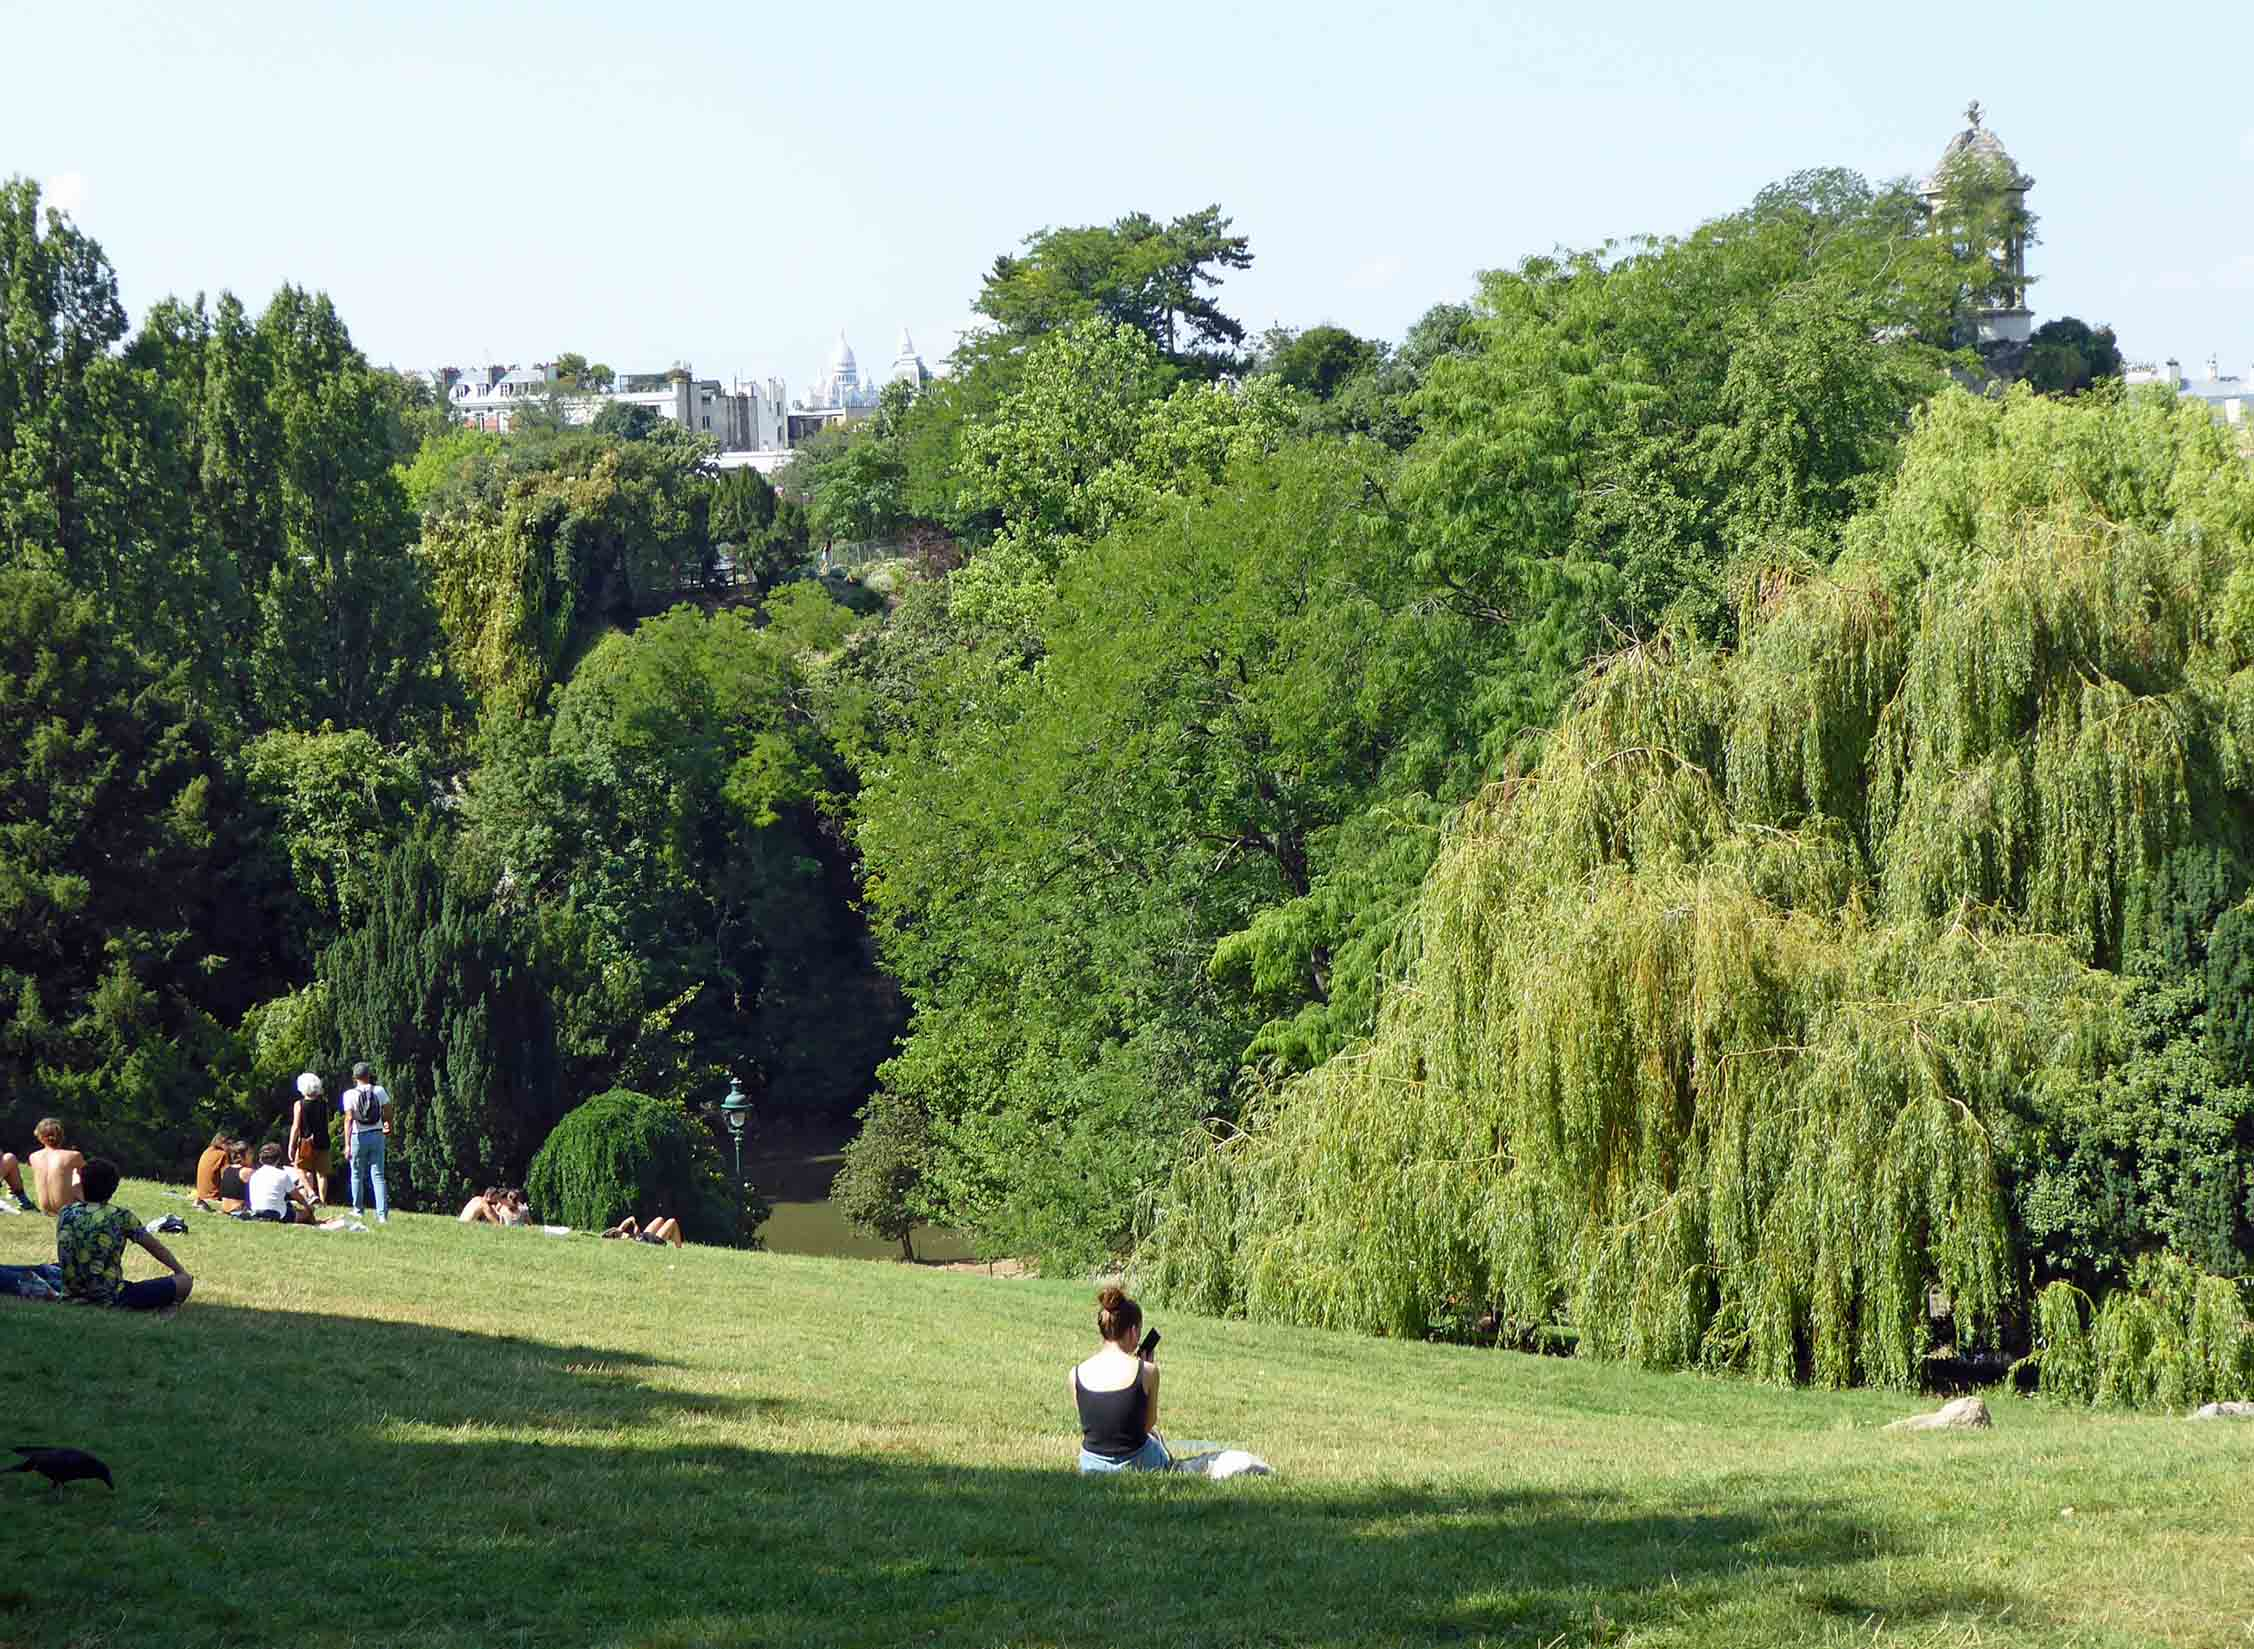 People sitting on grass with trees beyond